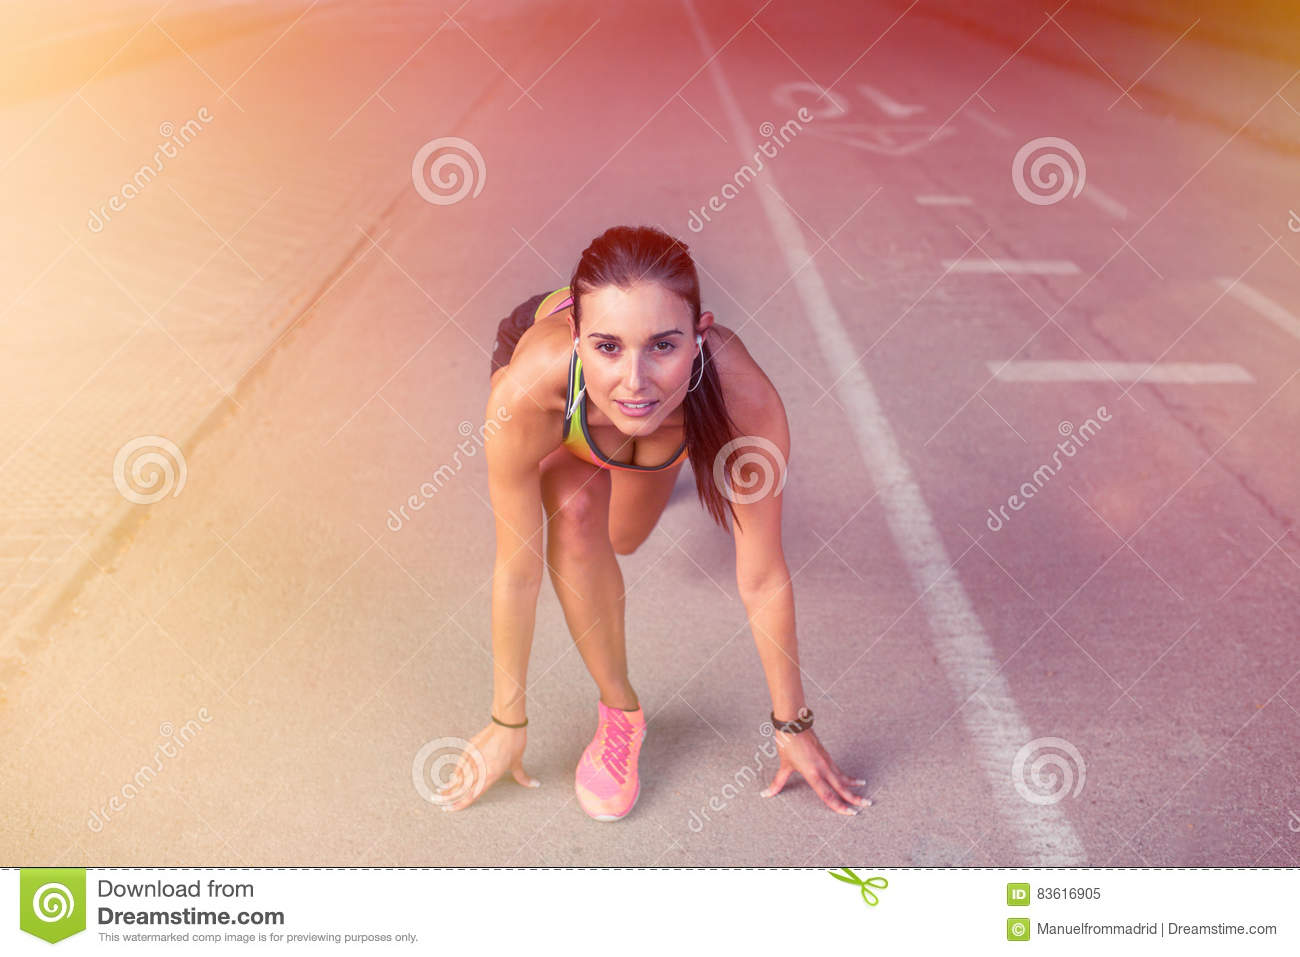 Woman Athlete In The Ready Set Go Position To Start Running Training Race